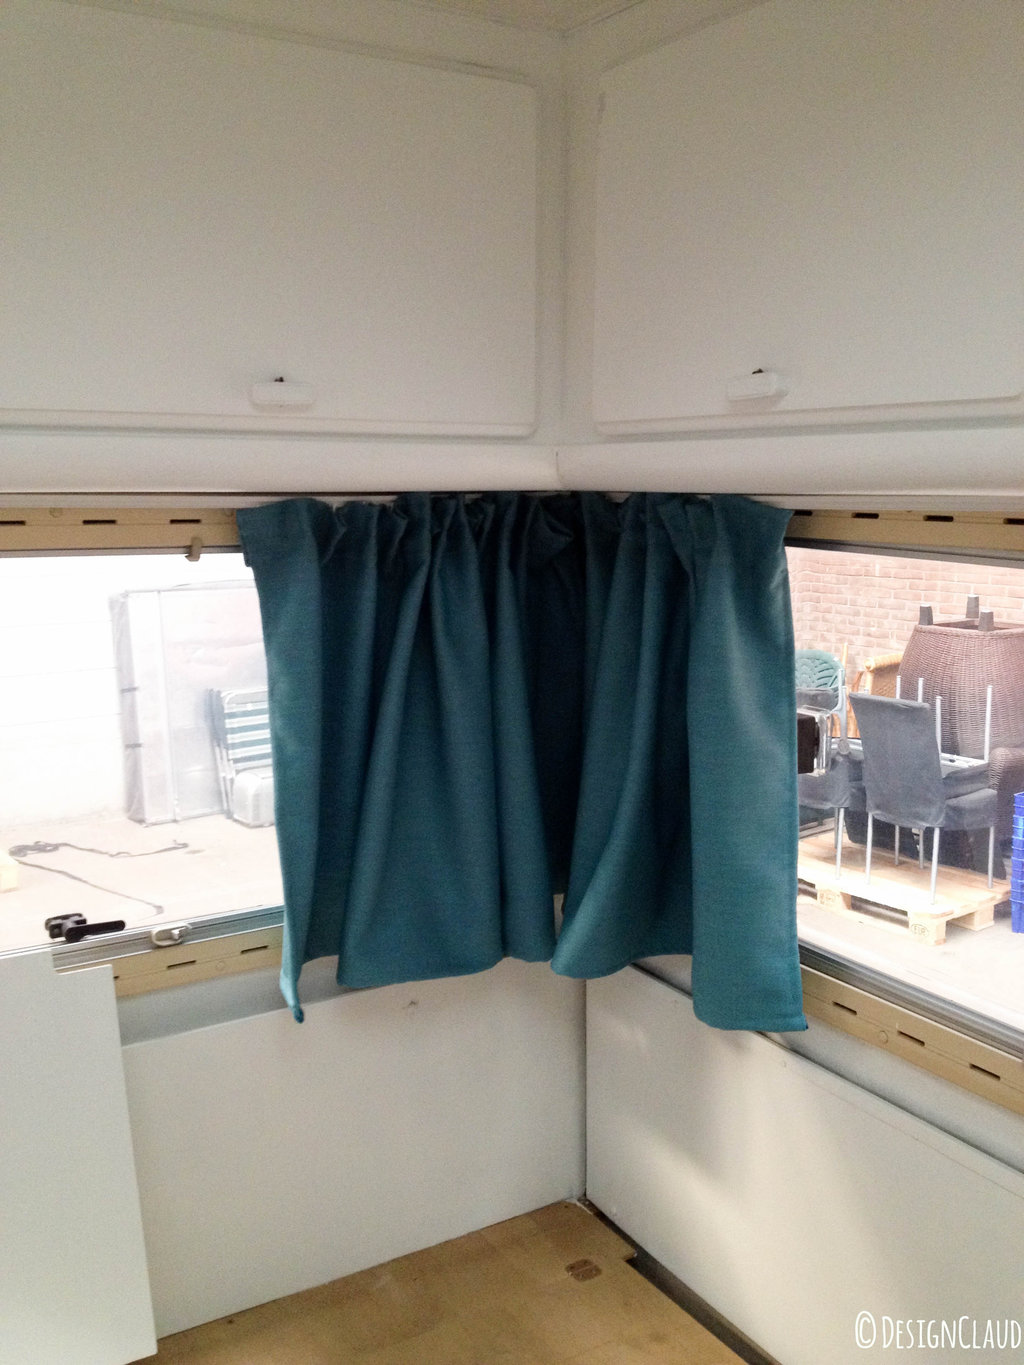 Rv curtains motorhome class a - Camper Window Treatments In The Corner The Curtains Hang Neatly Together Now I Have To